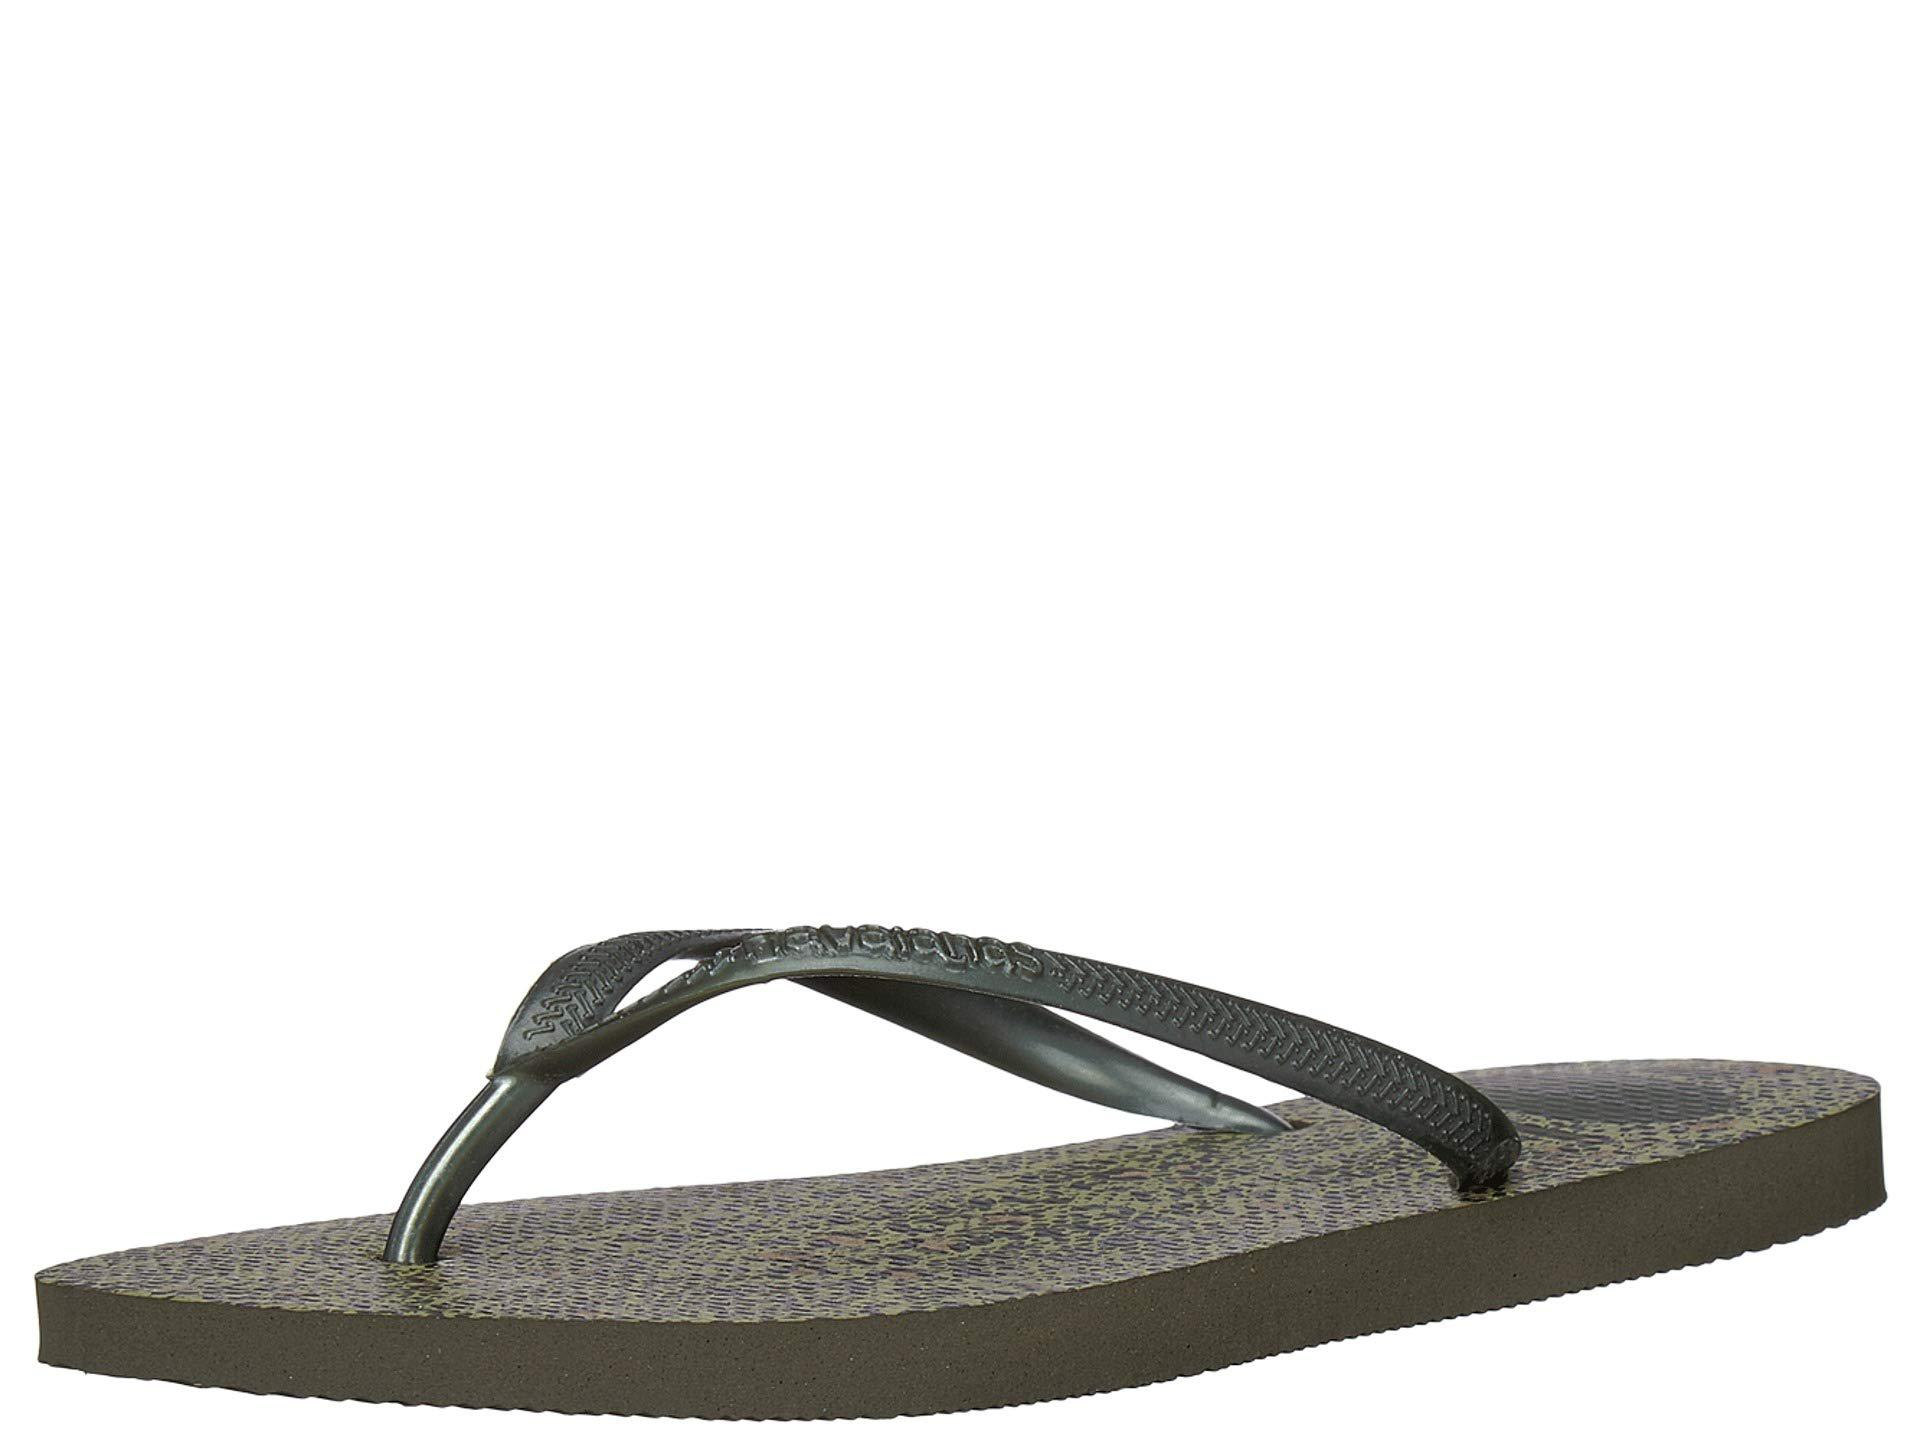 82dff277d Havaianas - Green Flip Flops Slim Animals - Lyst. View fullscreen